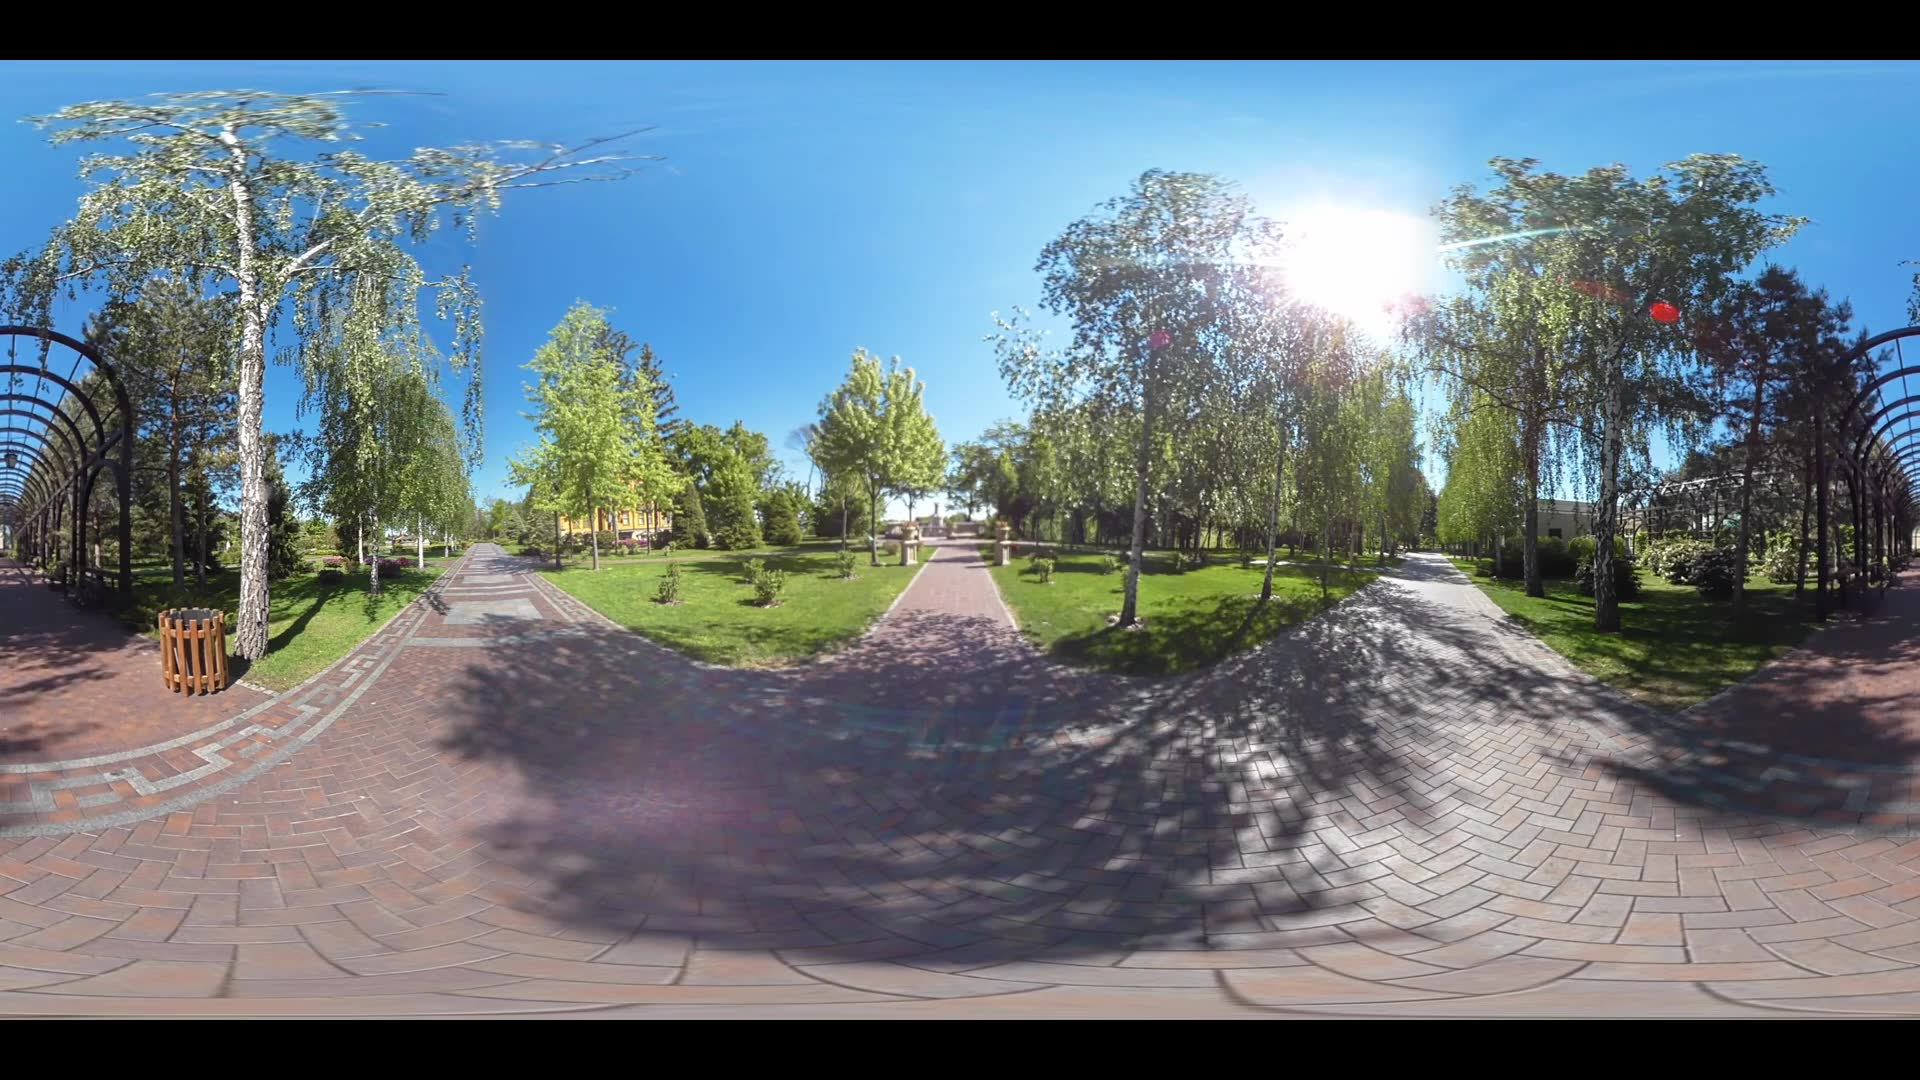 Walking paths in summer park. Panoramic view summer park in city 360 view. Landscape green trees in city park. 360 degrees park path panorama